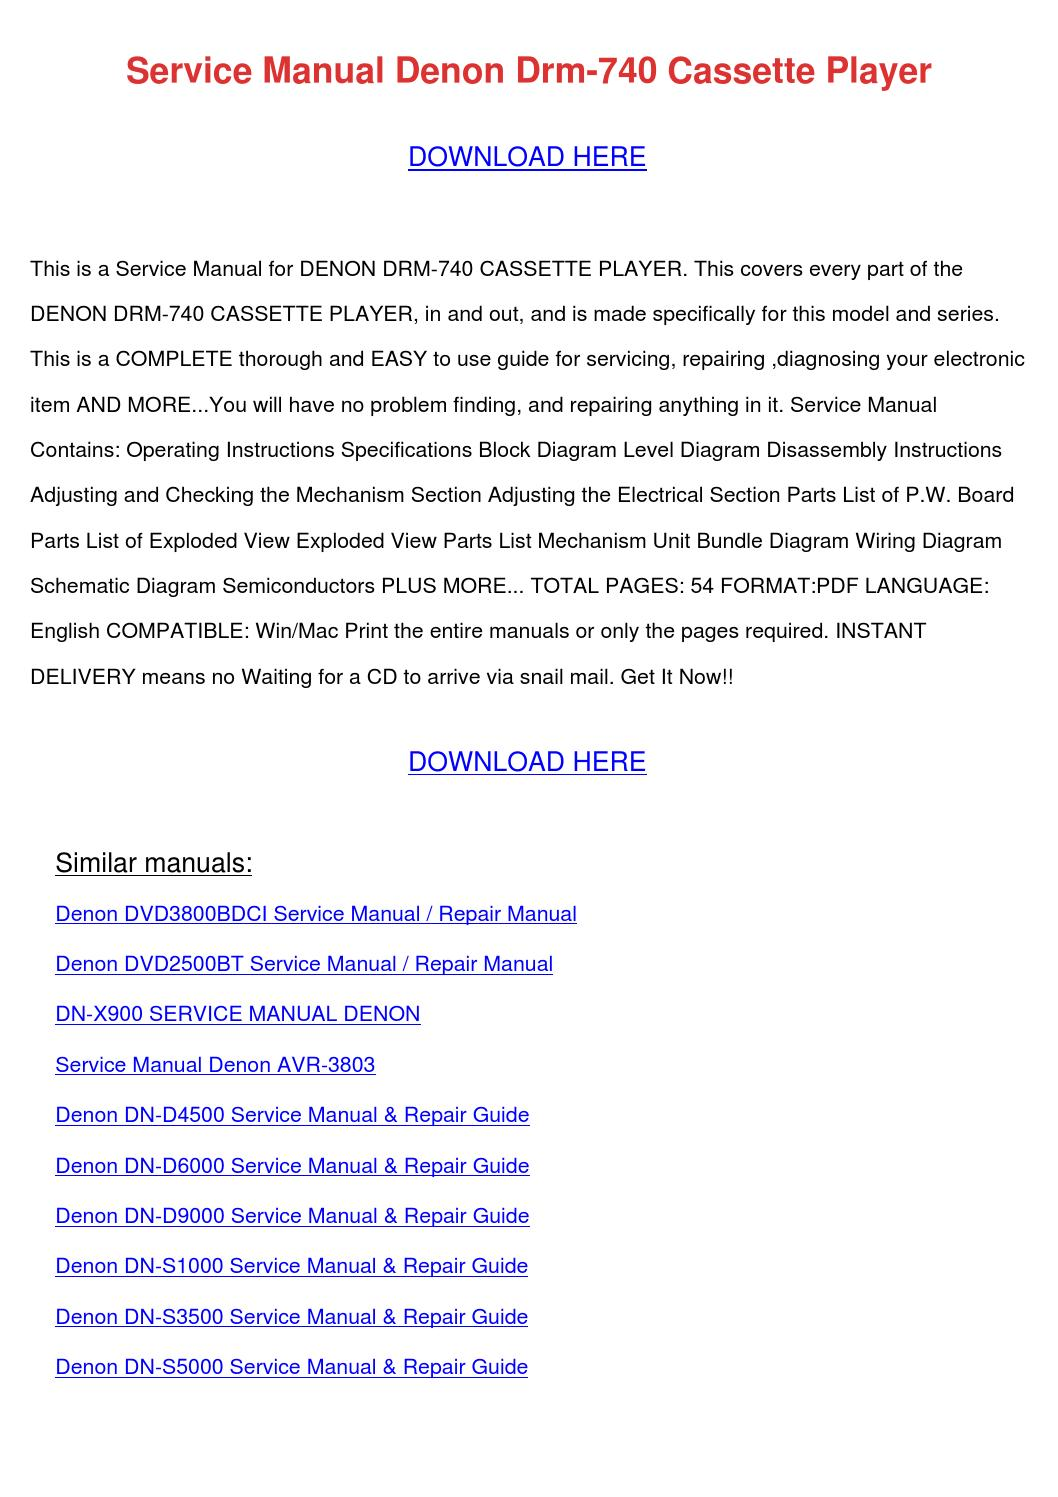 Service Manual Denon Drm 740 Cassette Player by SeanRoach - issuu